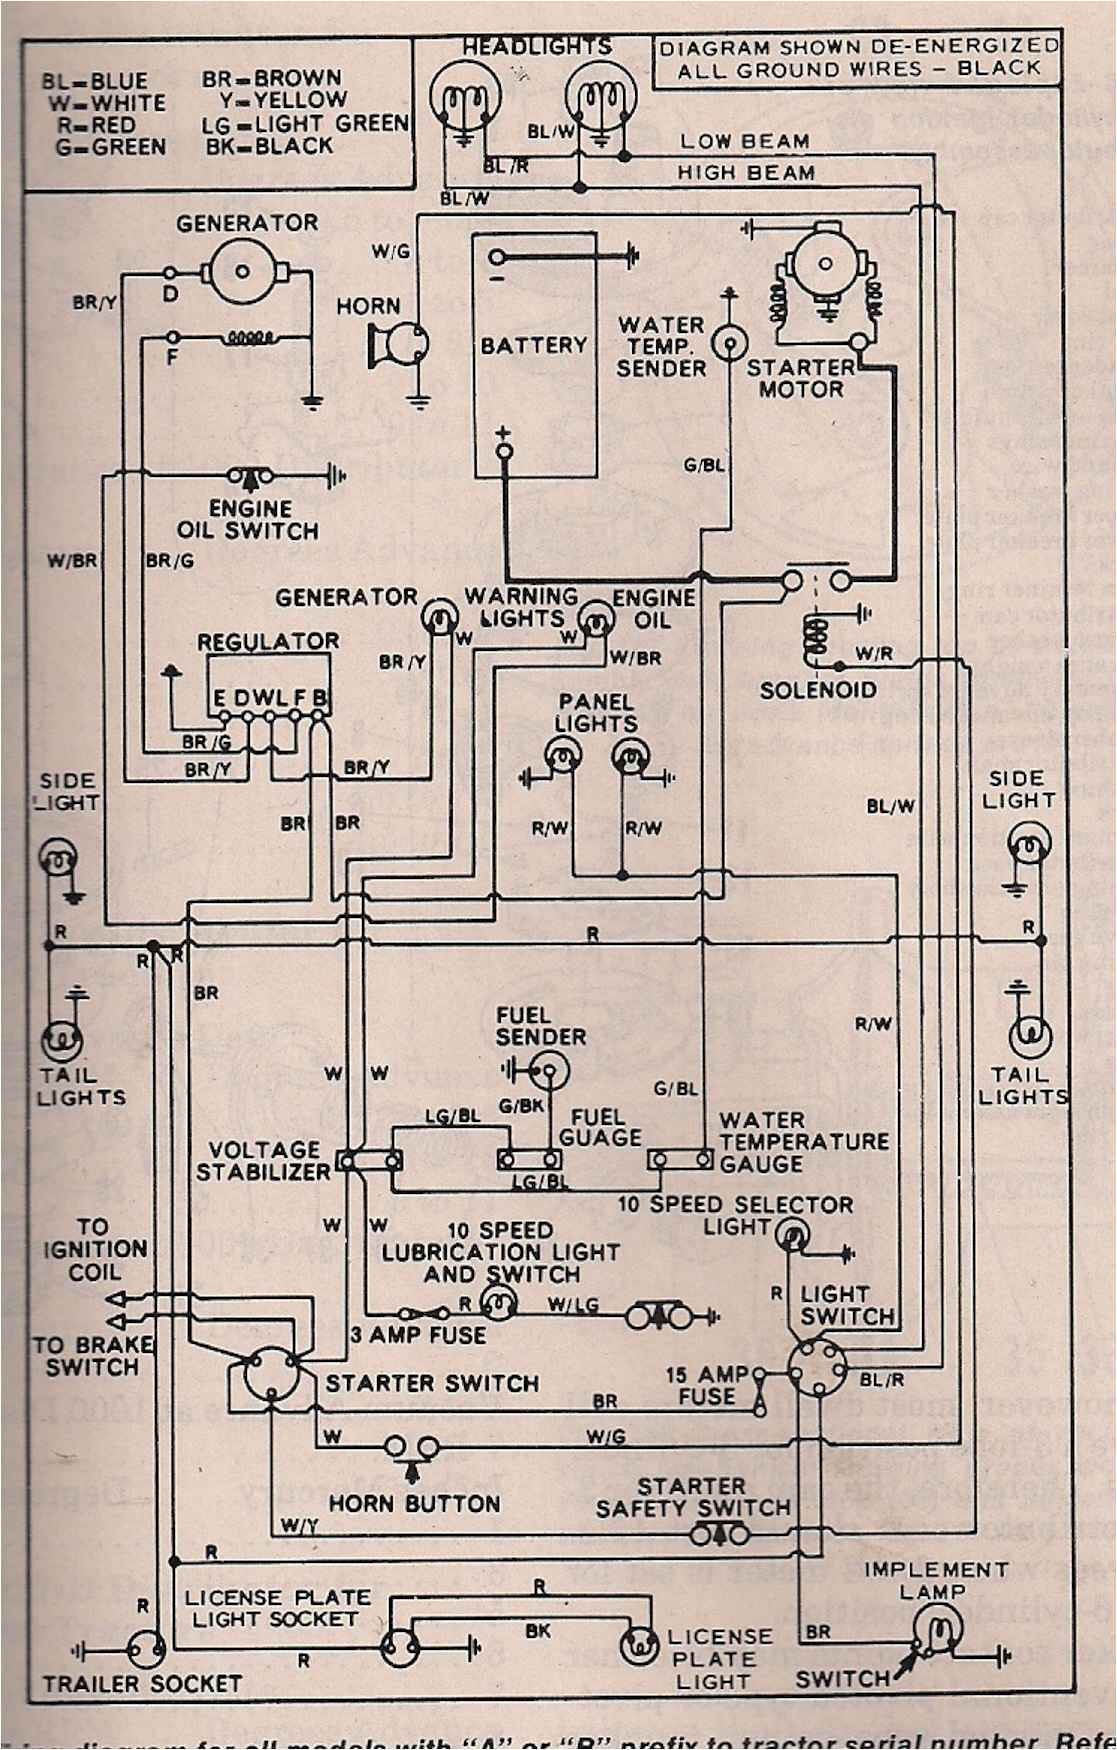 wiring diagram for ford 3000 tractor wiring diagrams favorites 1976 ford 3000 wiring diagram